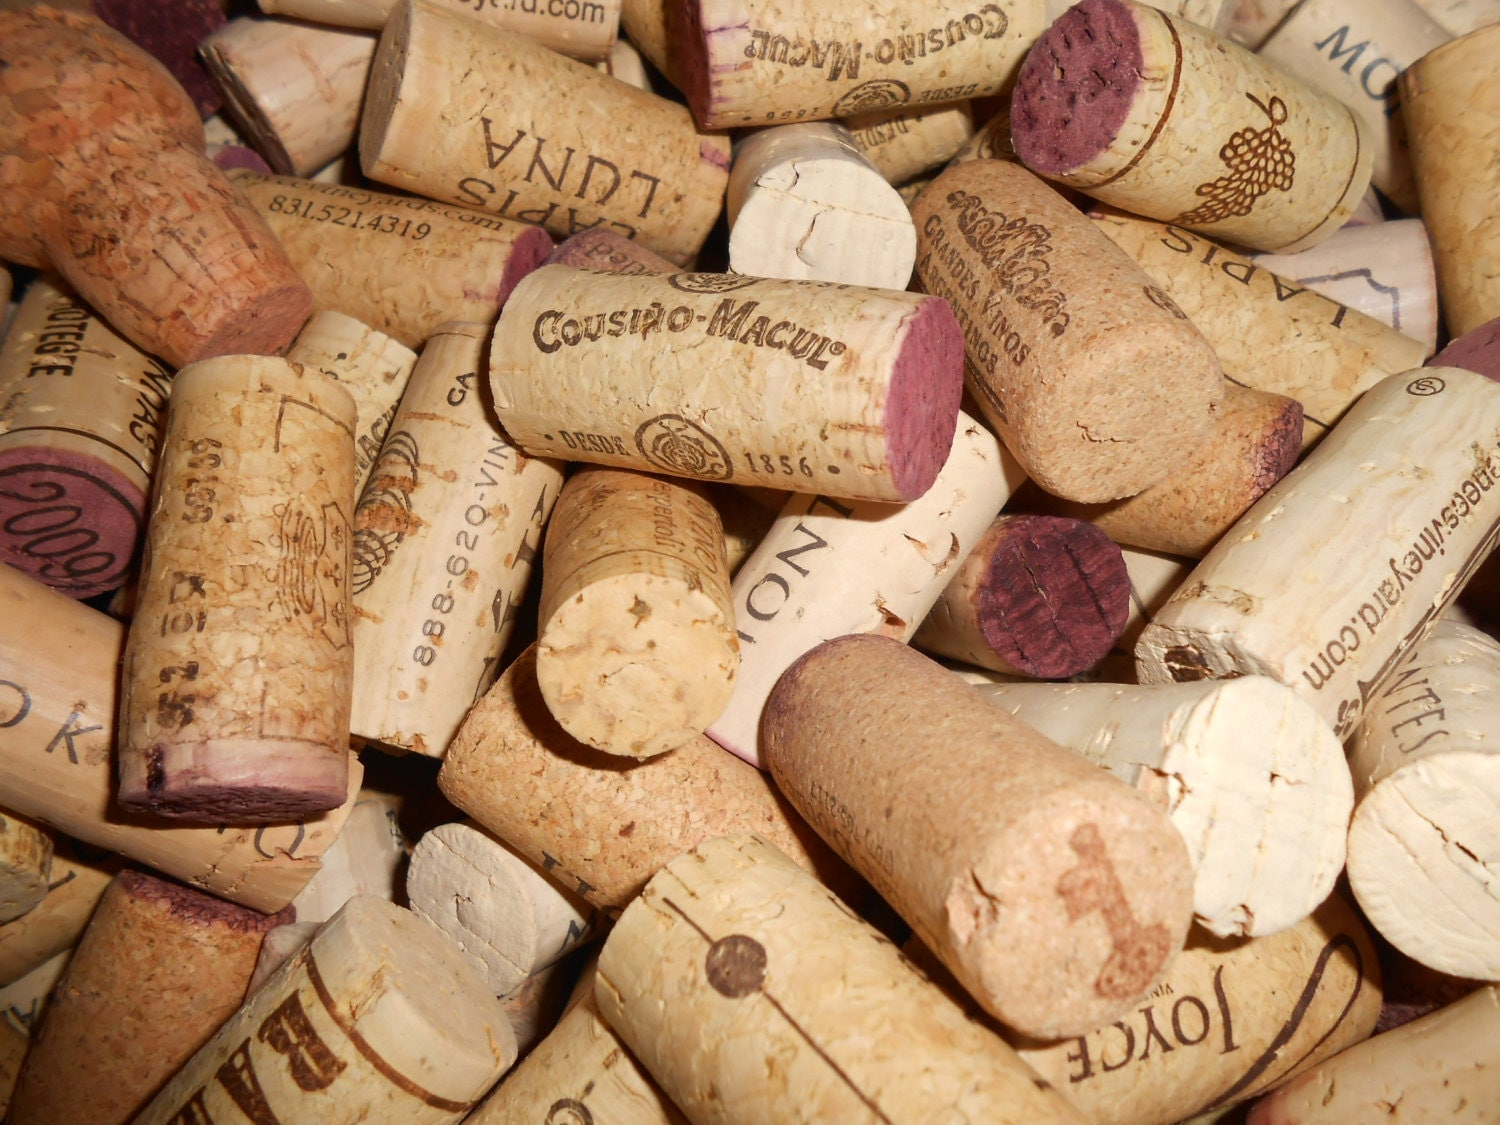 Used wine corks for crafts -  11 25